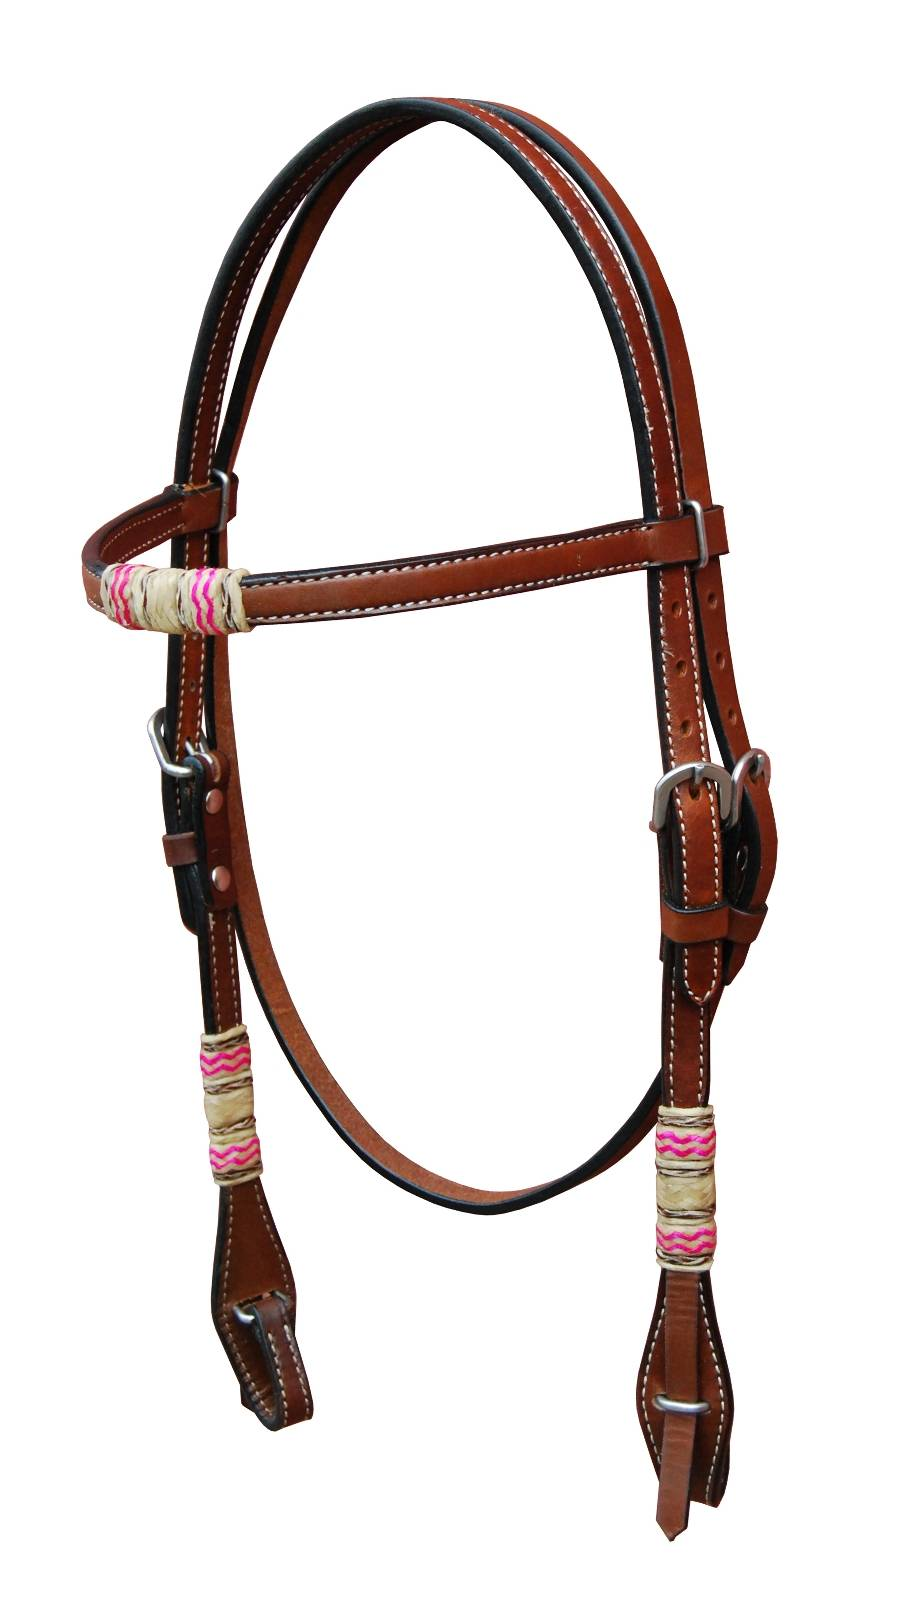 Turn-Two Browband Headstall - Laredo